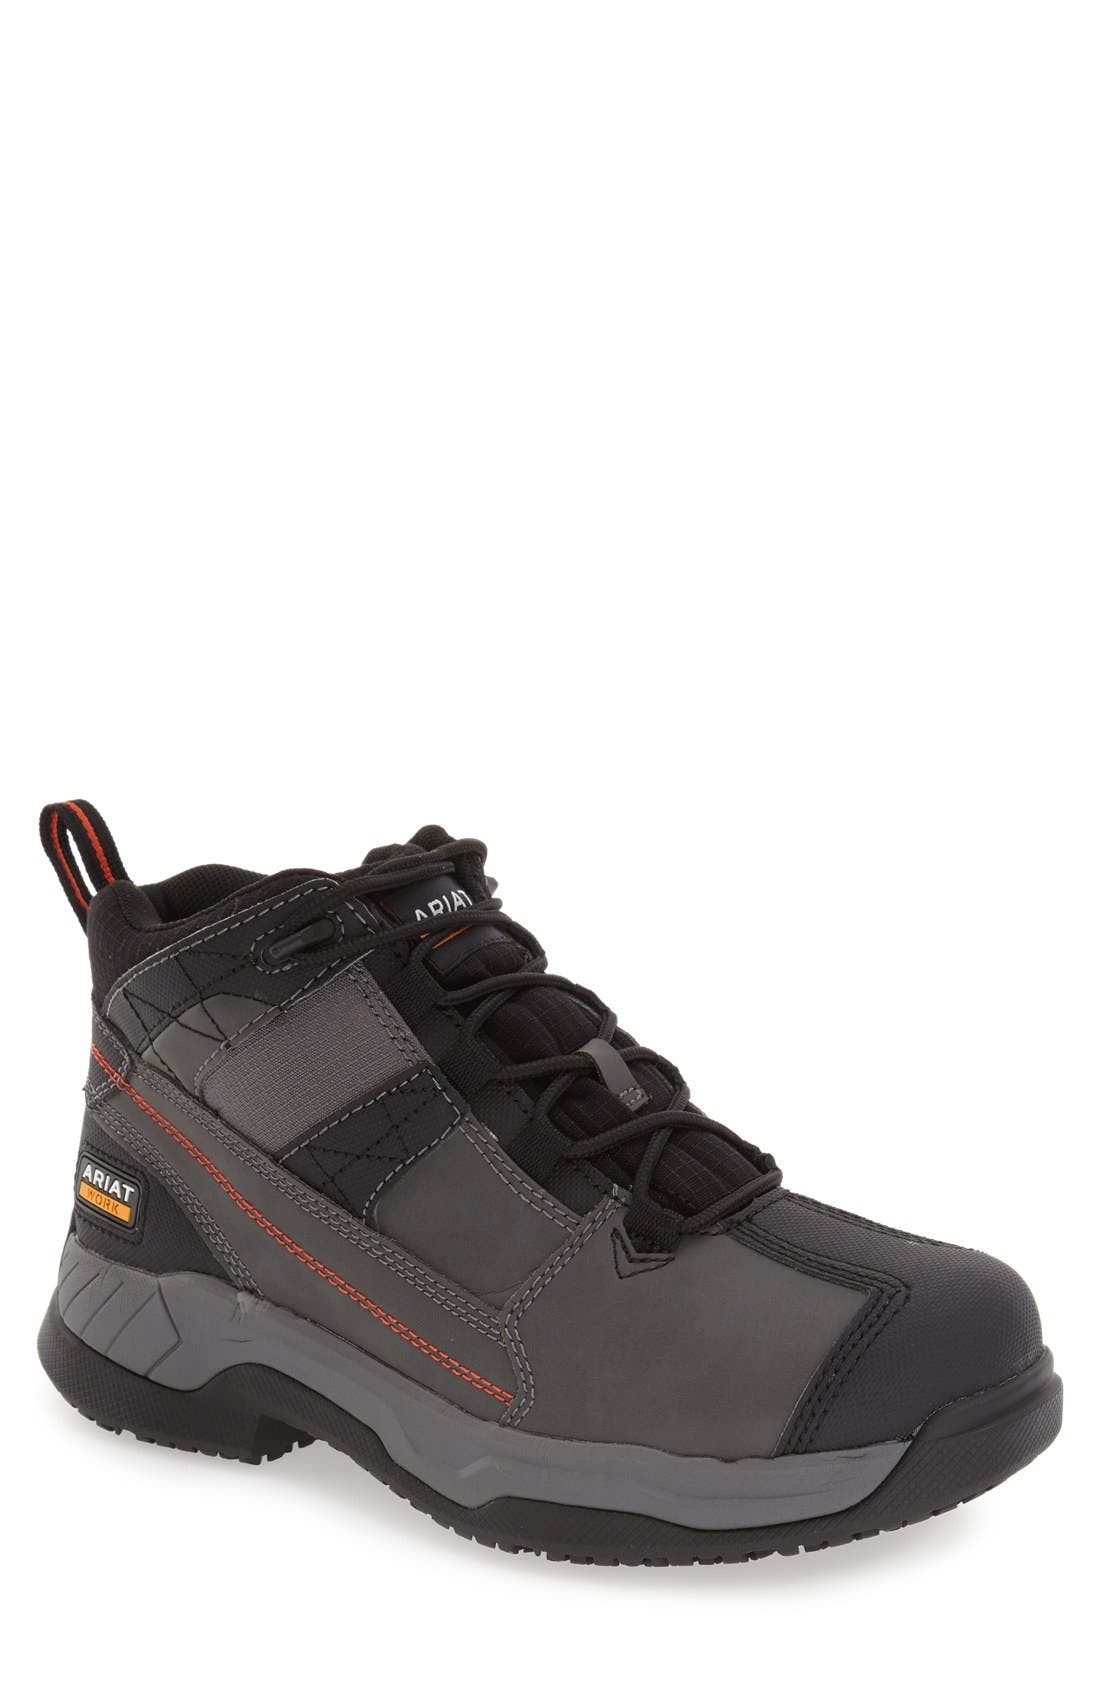 'Contender' Boot,                         Main,                         color, 020